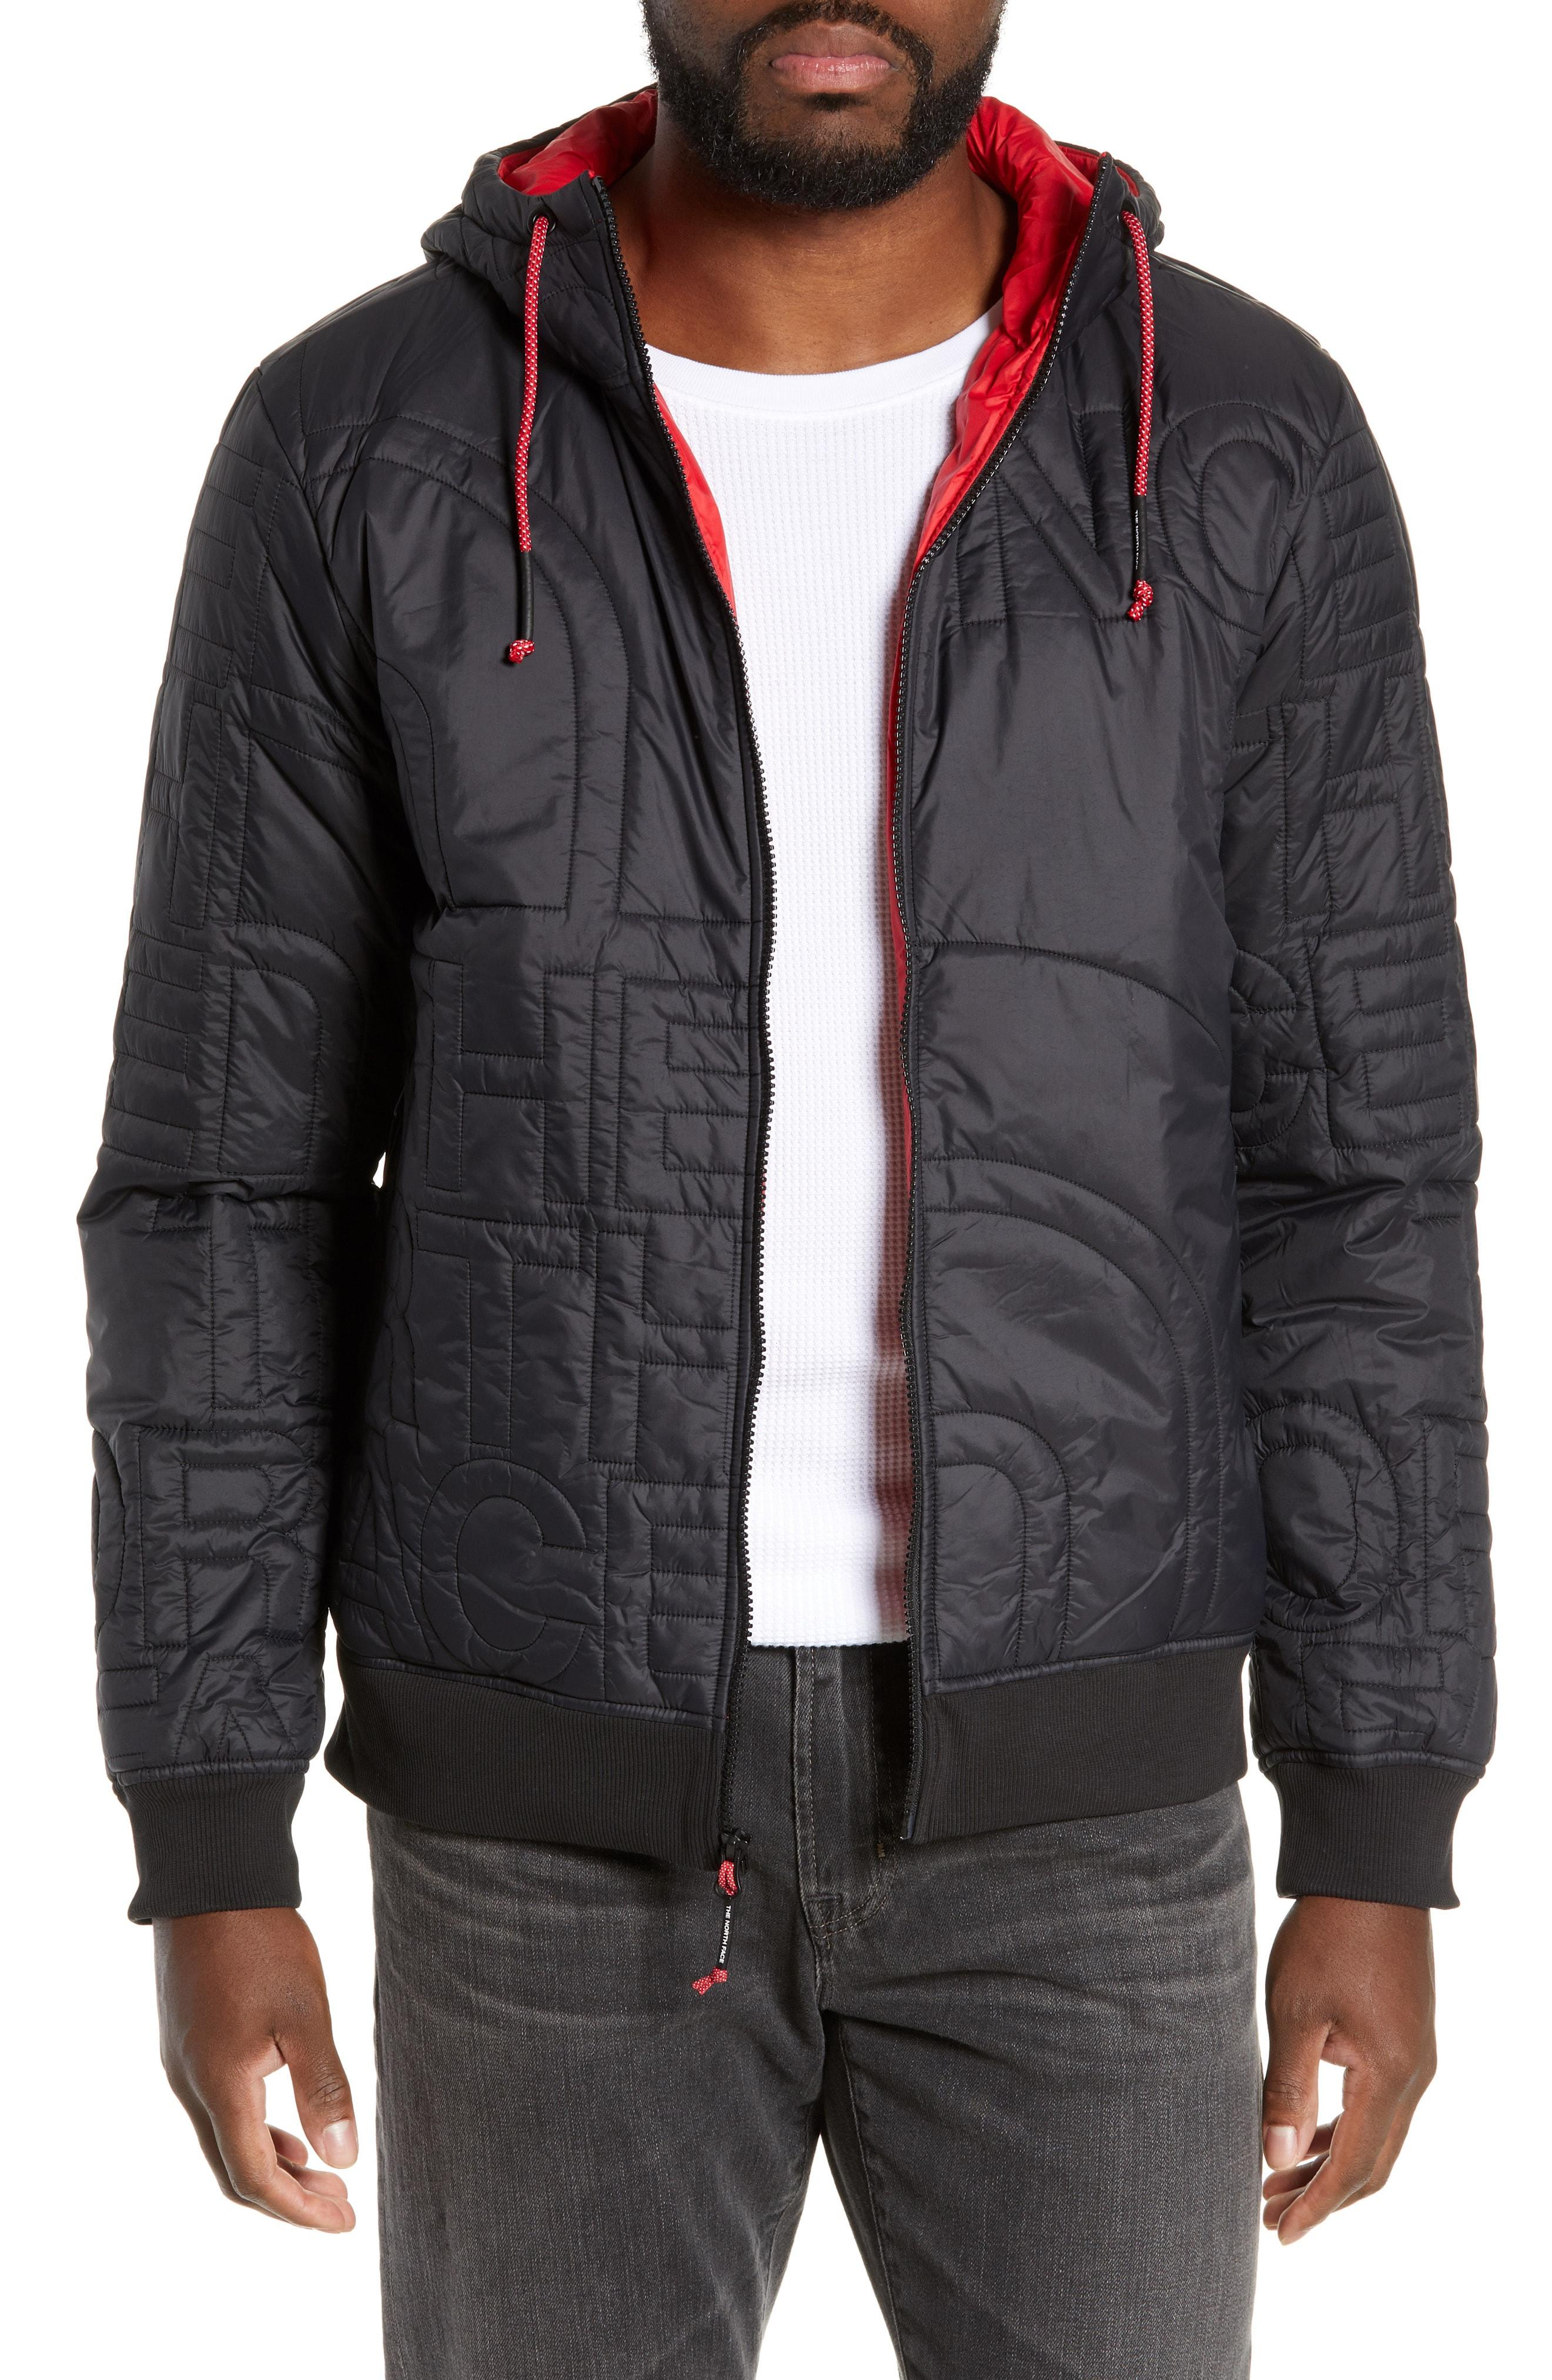 The North Face - Blue Alphabet City Quilted Jacket for Men - Lyst. View  fullscreen 667e4f241